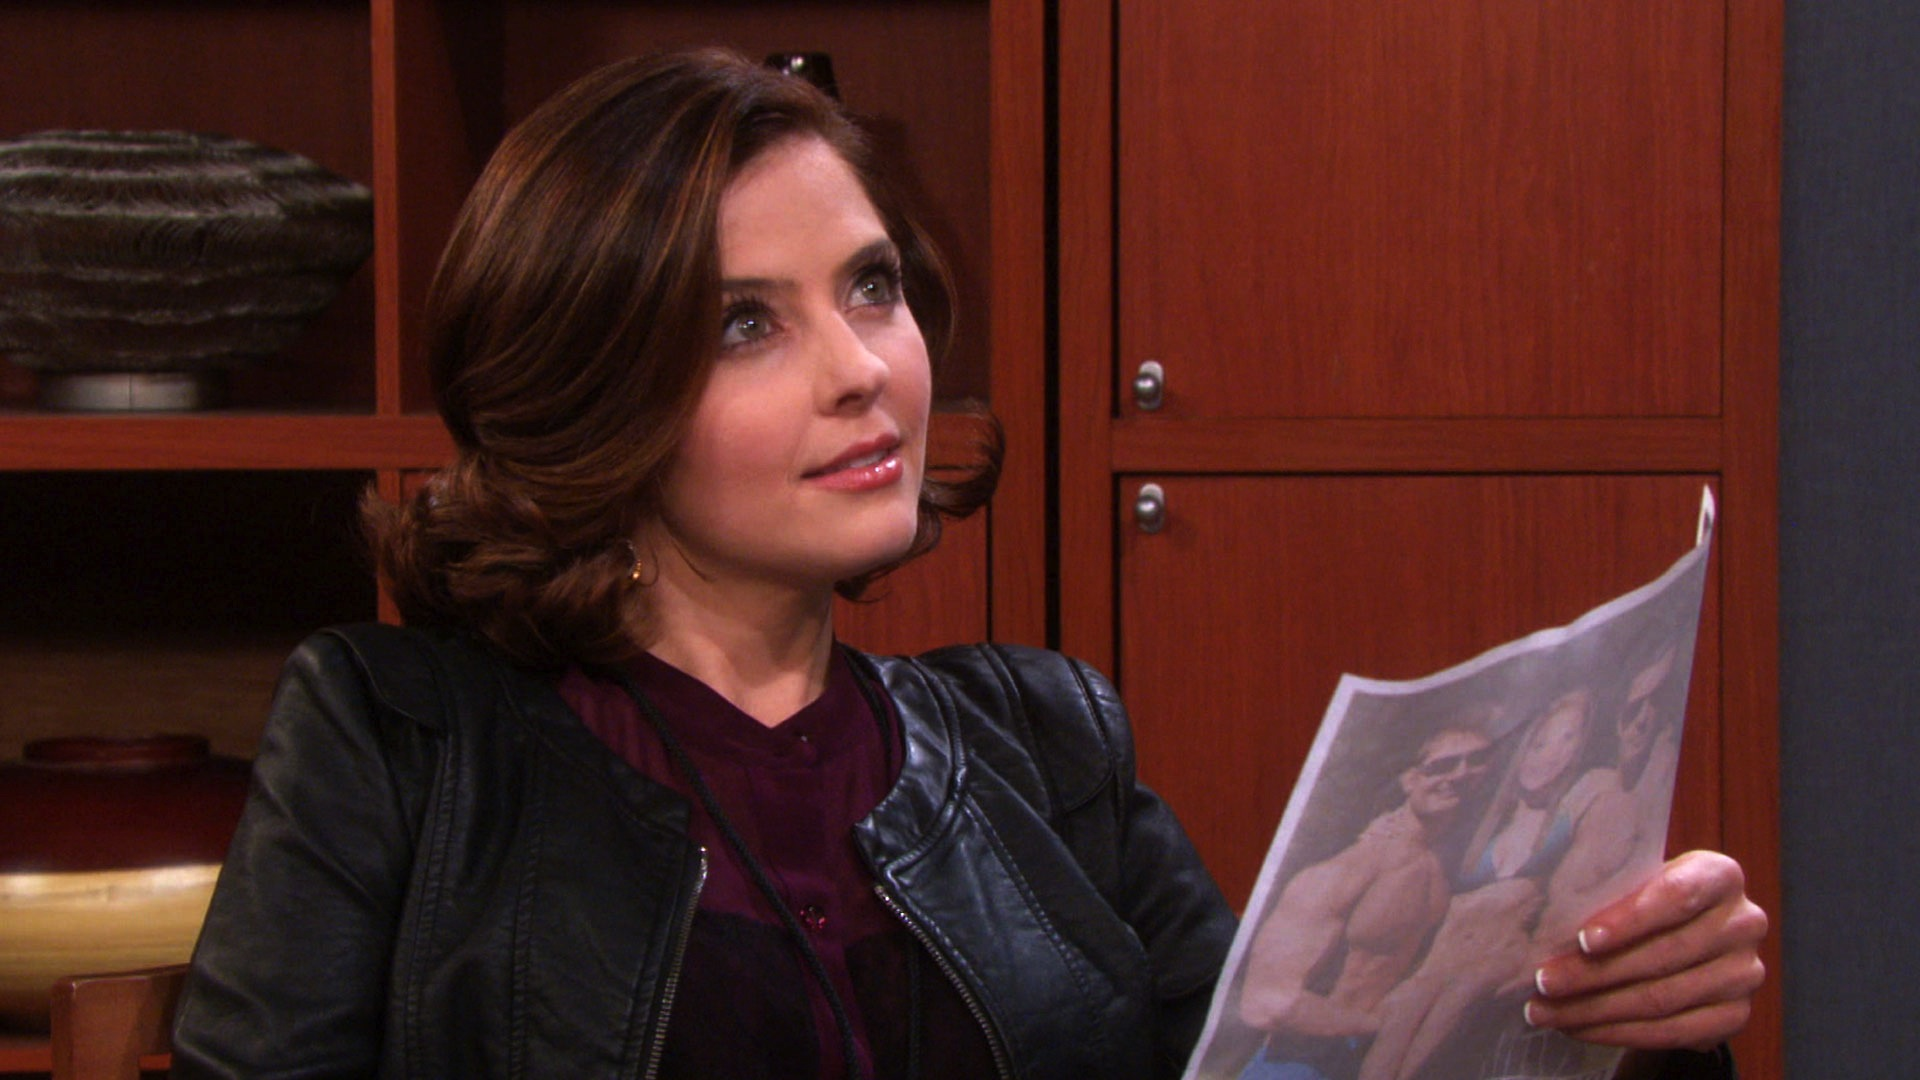 EJ and Abigail meet with a private doctor to determine if she's pregnant.